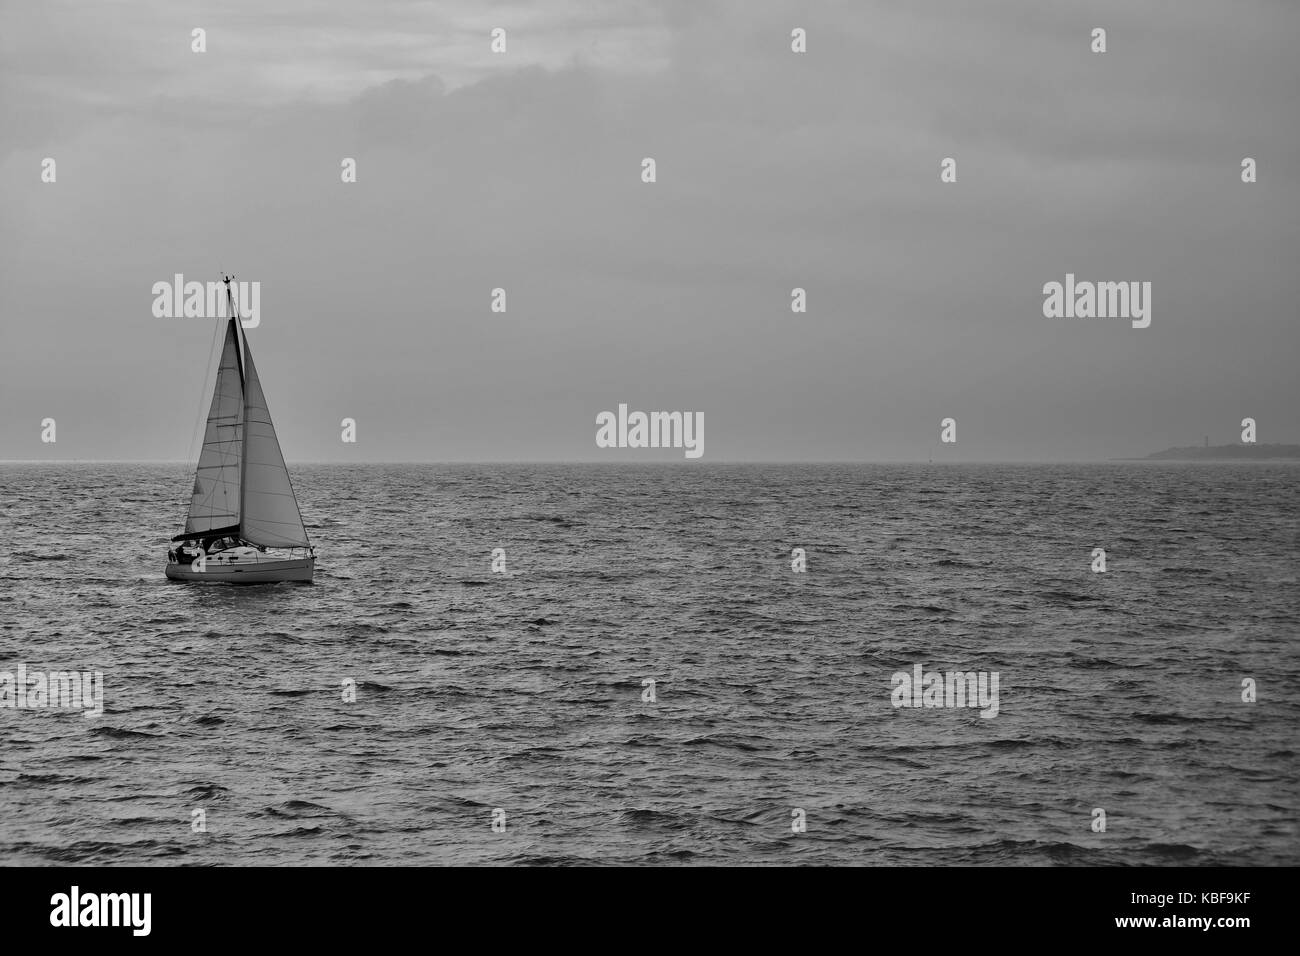 Felixstowe, UK. 29th Sep, 2017. Sailing dinghy heading for Felixstowe seen from Landguard Point. Cloudy and overcast - Stock Image